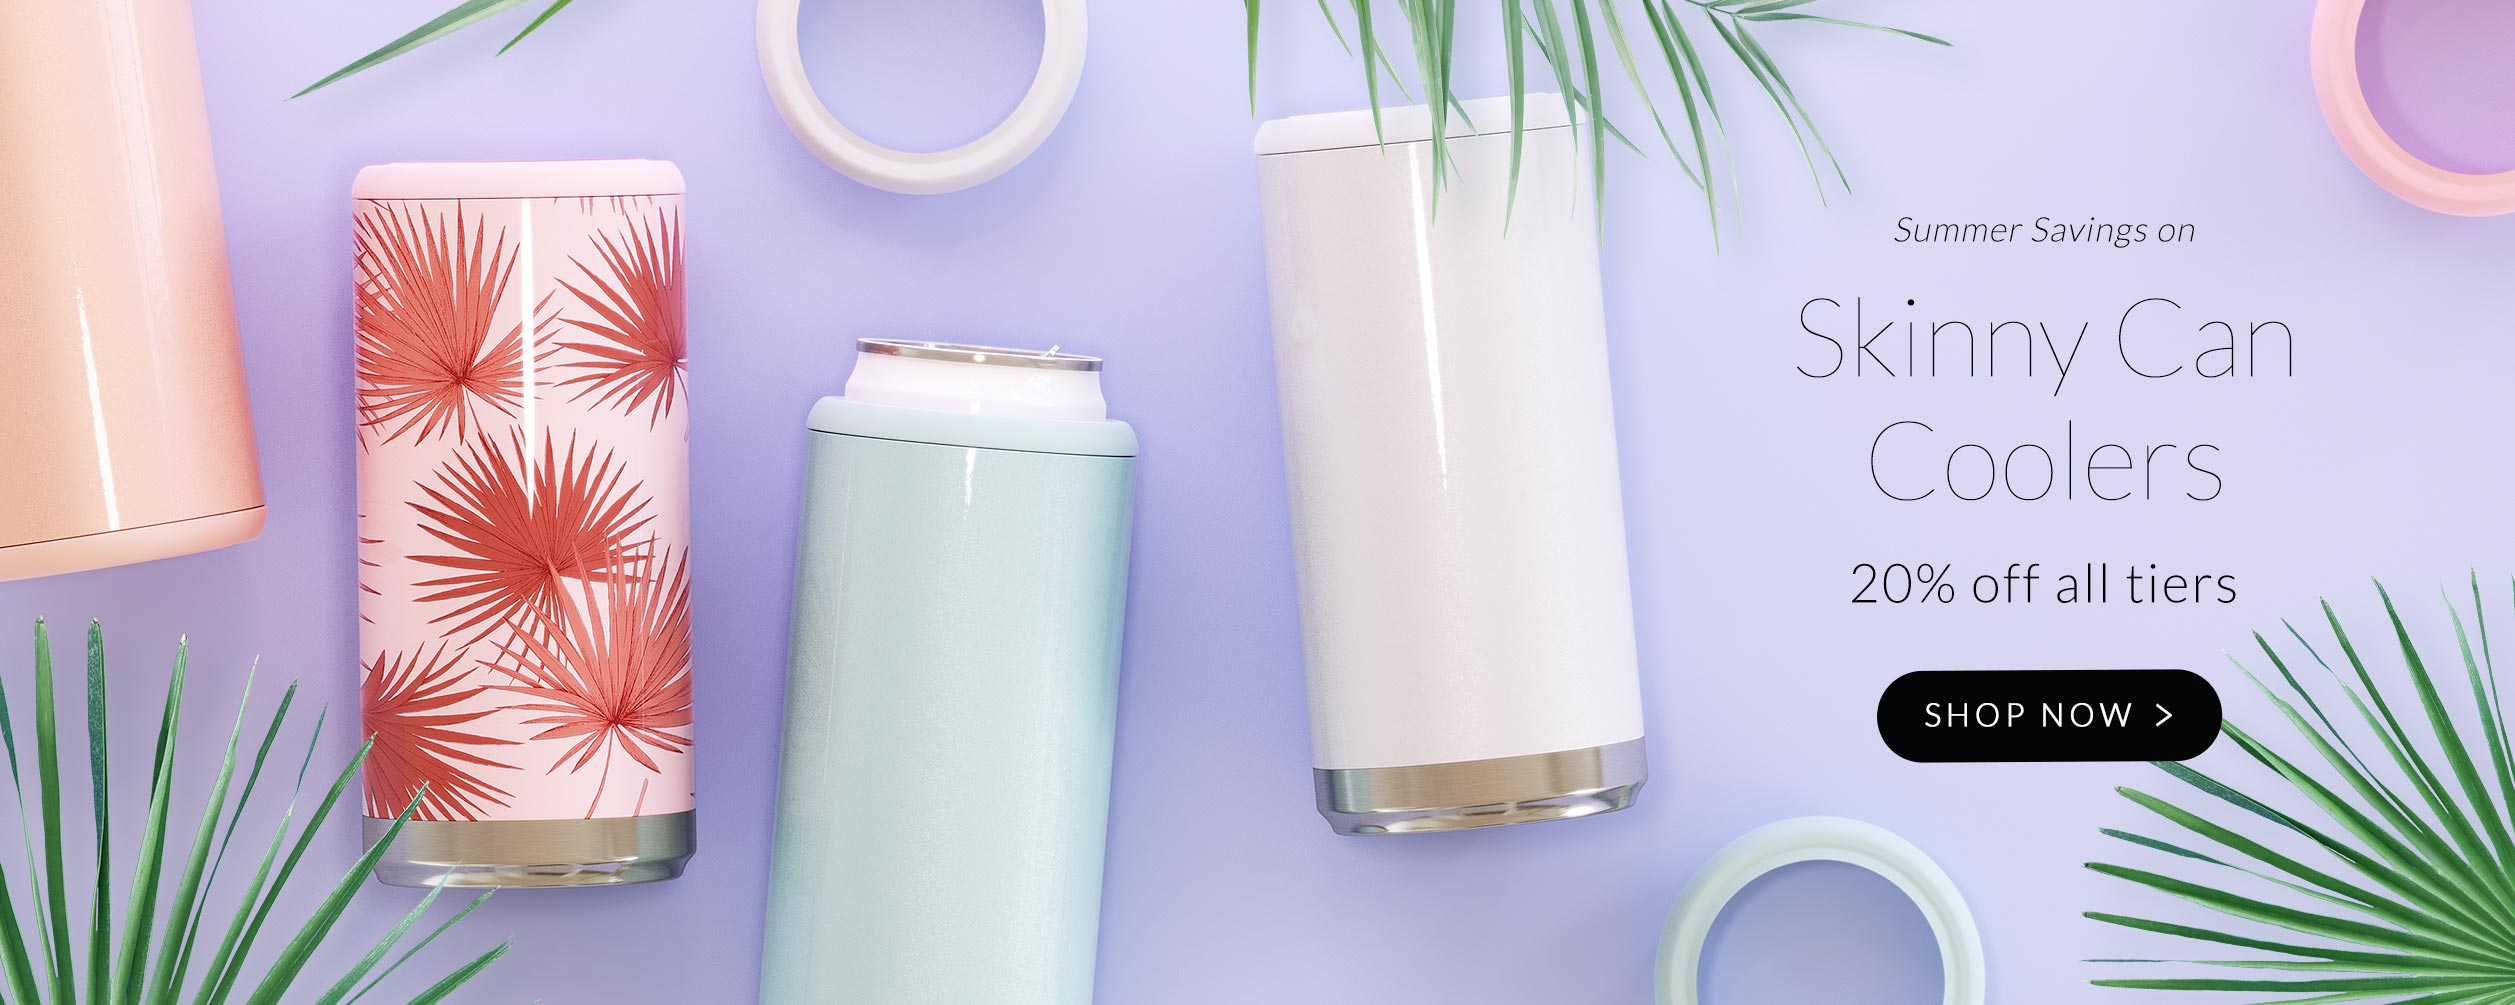 Flash Sale Page for Skinny Can Cooler now 20% off all tiers on select colors. Sale Ends 7.27.21.